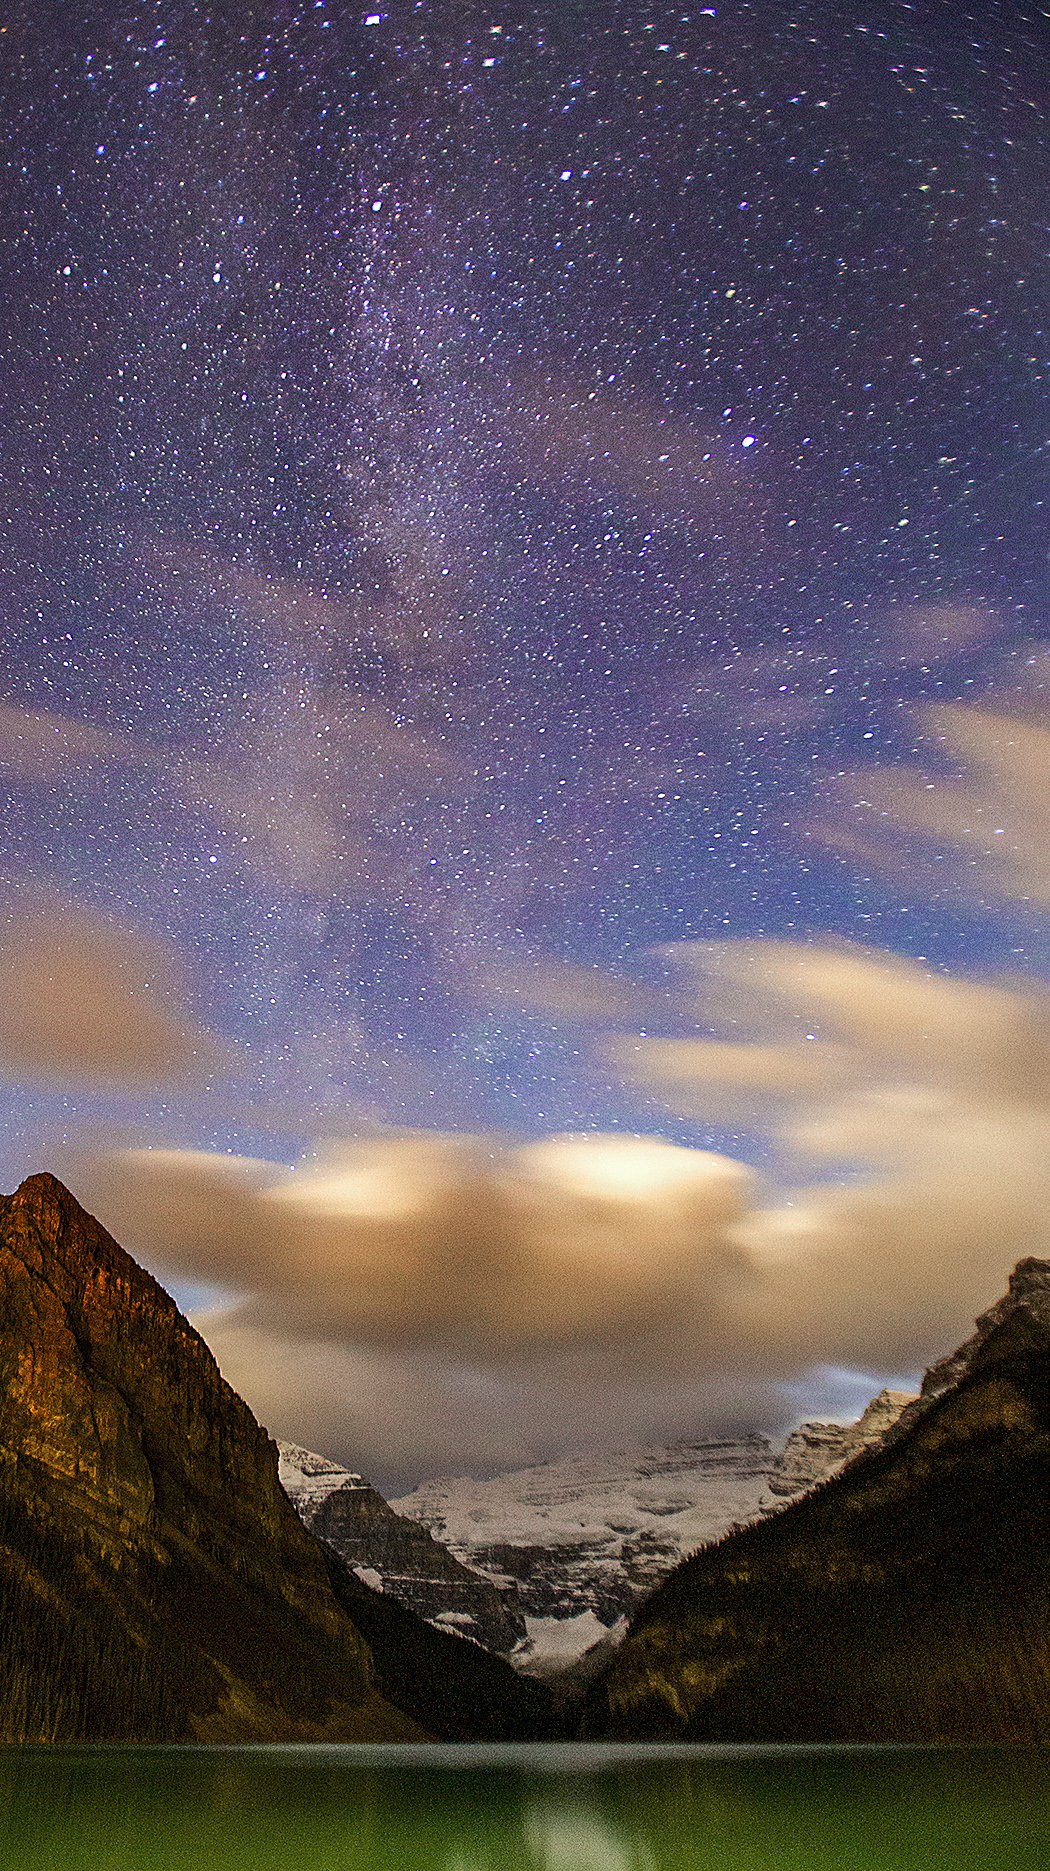 lake louise and milky way